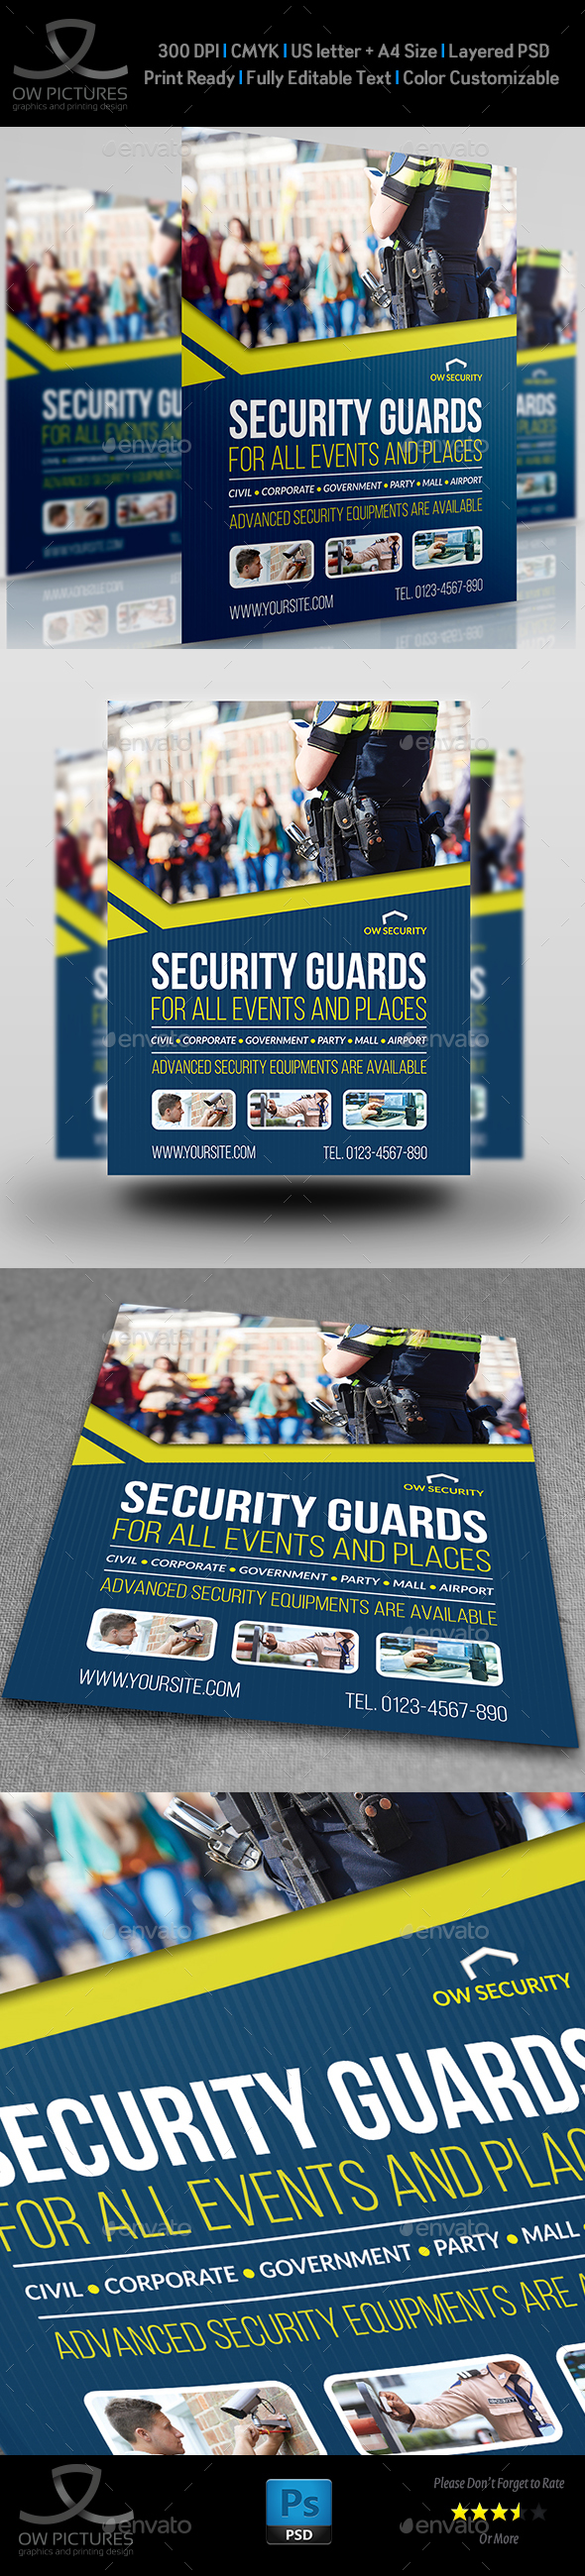 Security Guards Flyer Template - Corporate Flyers